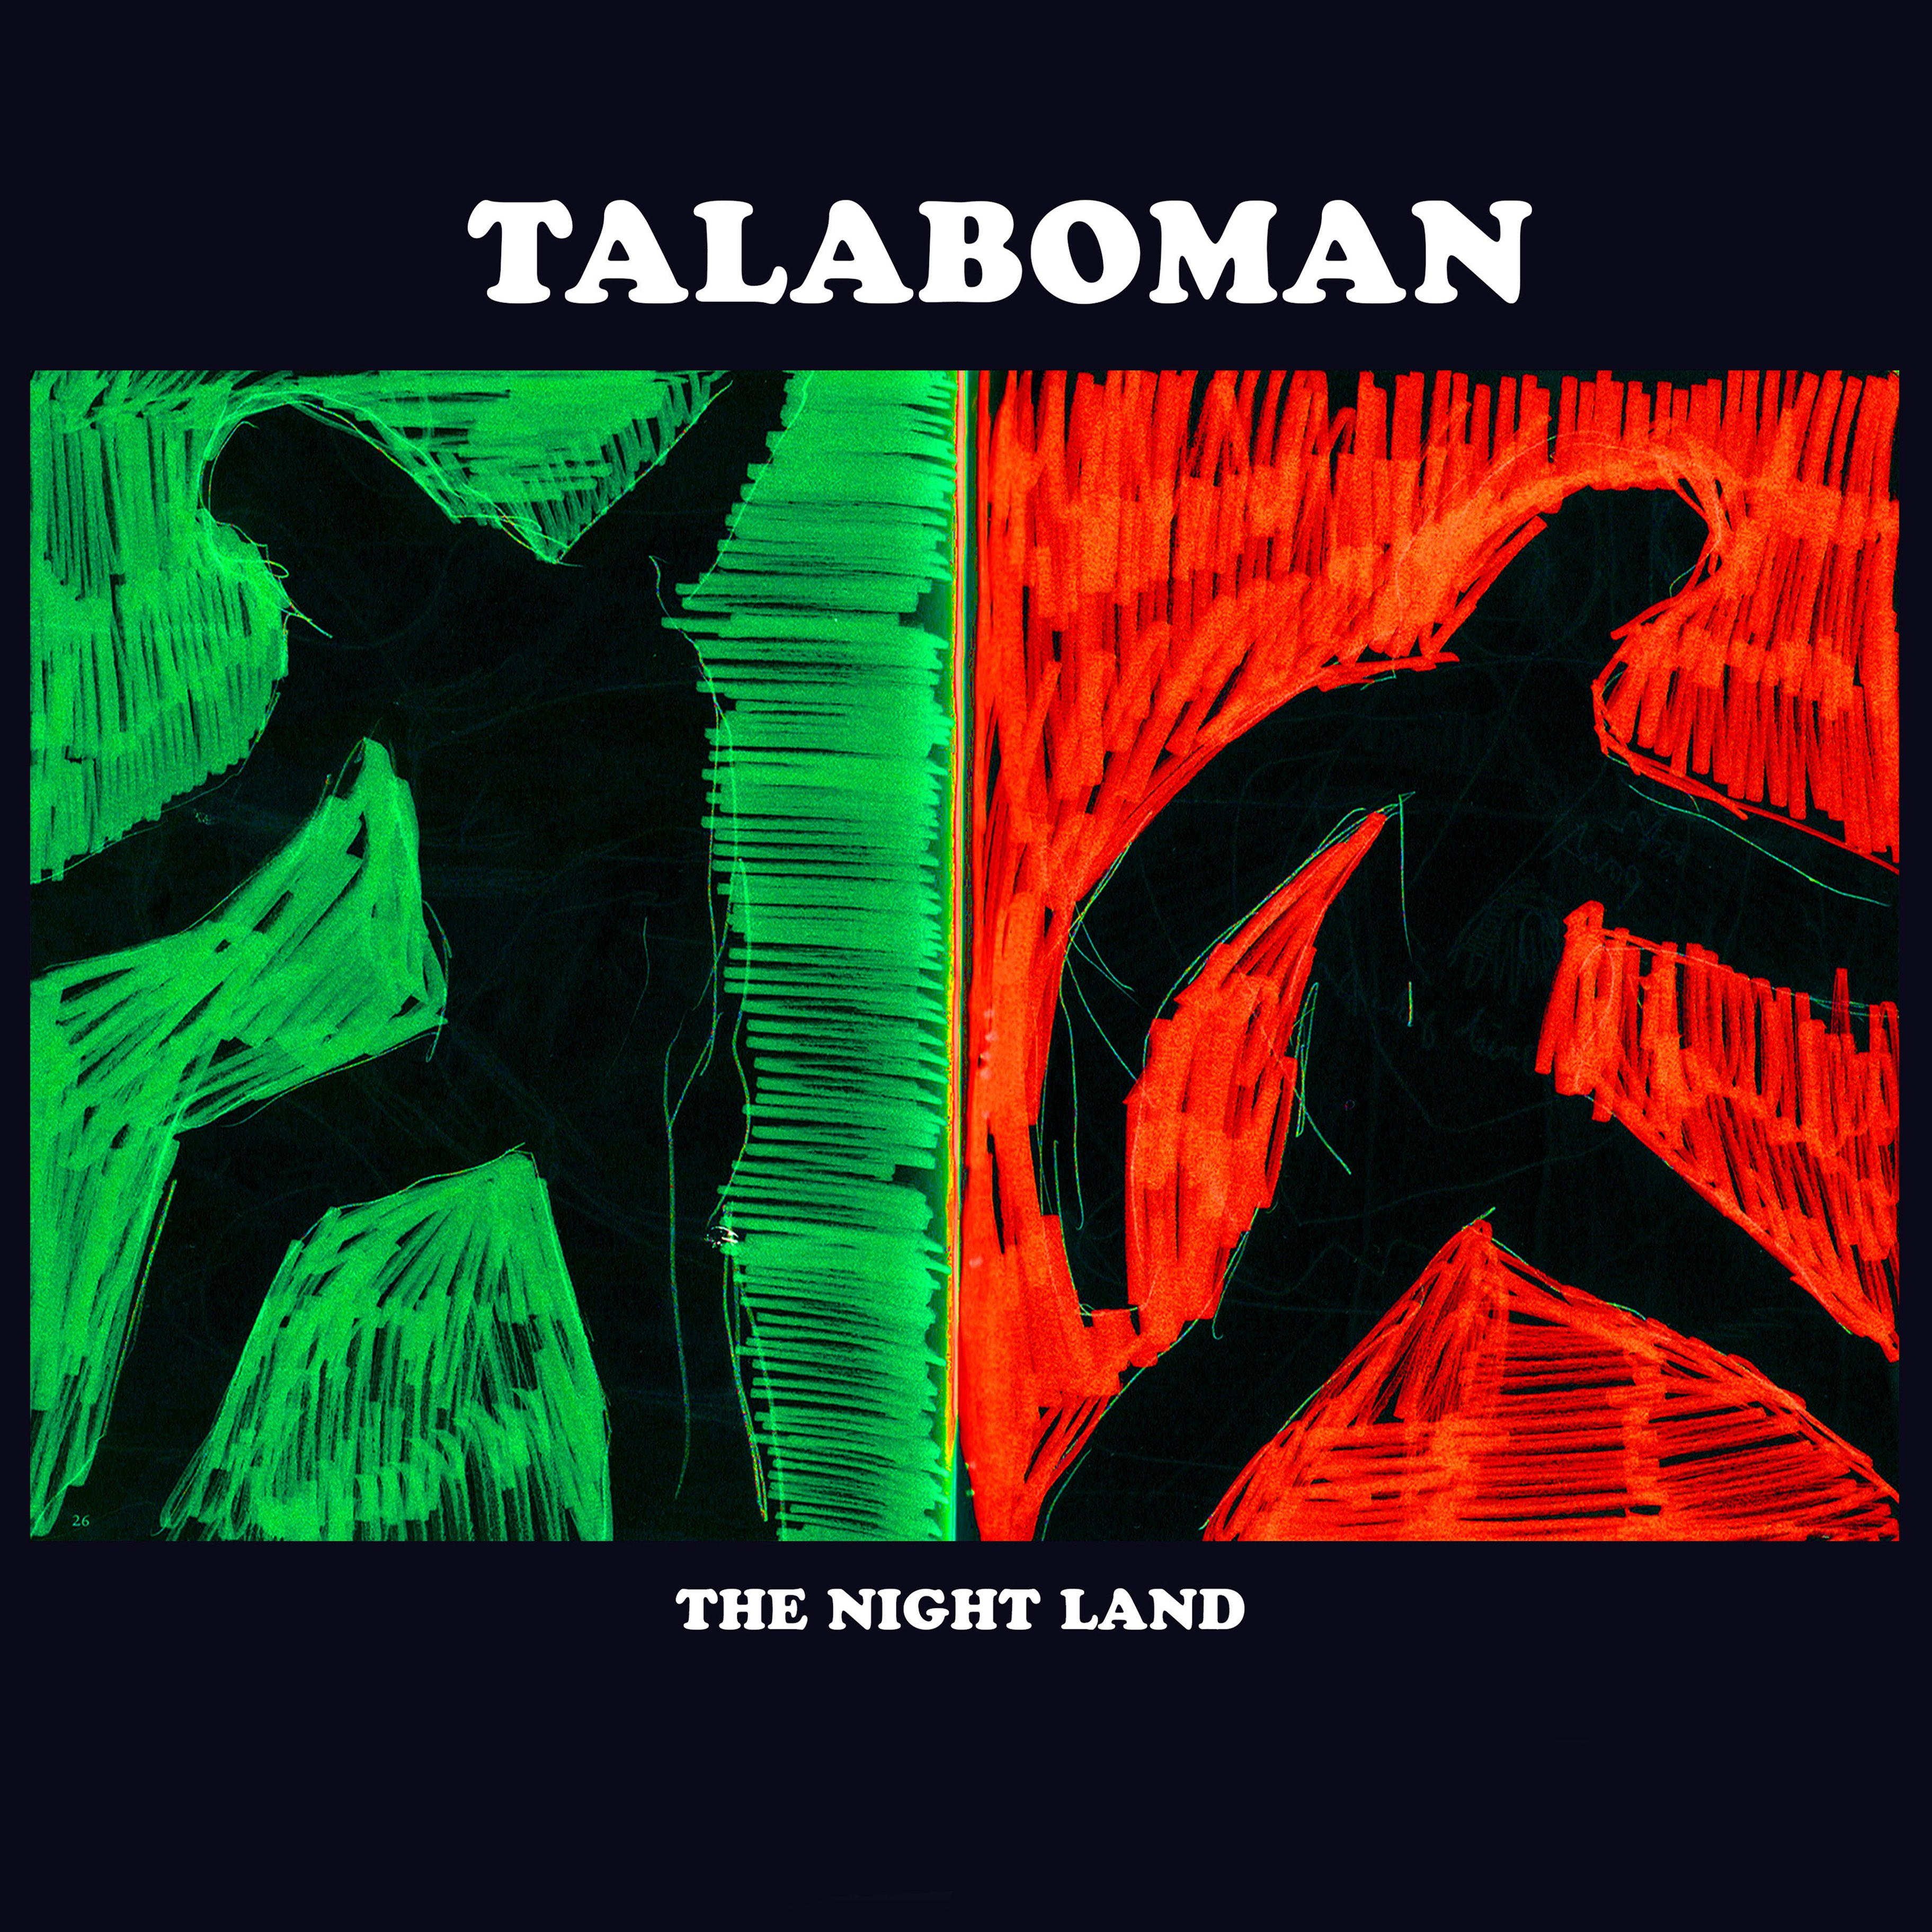 Talaboman-The-Night-Land-RS1702-packshot-web